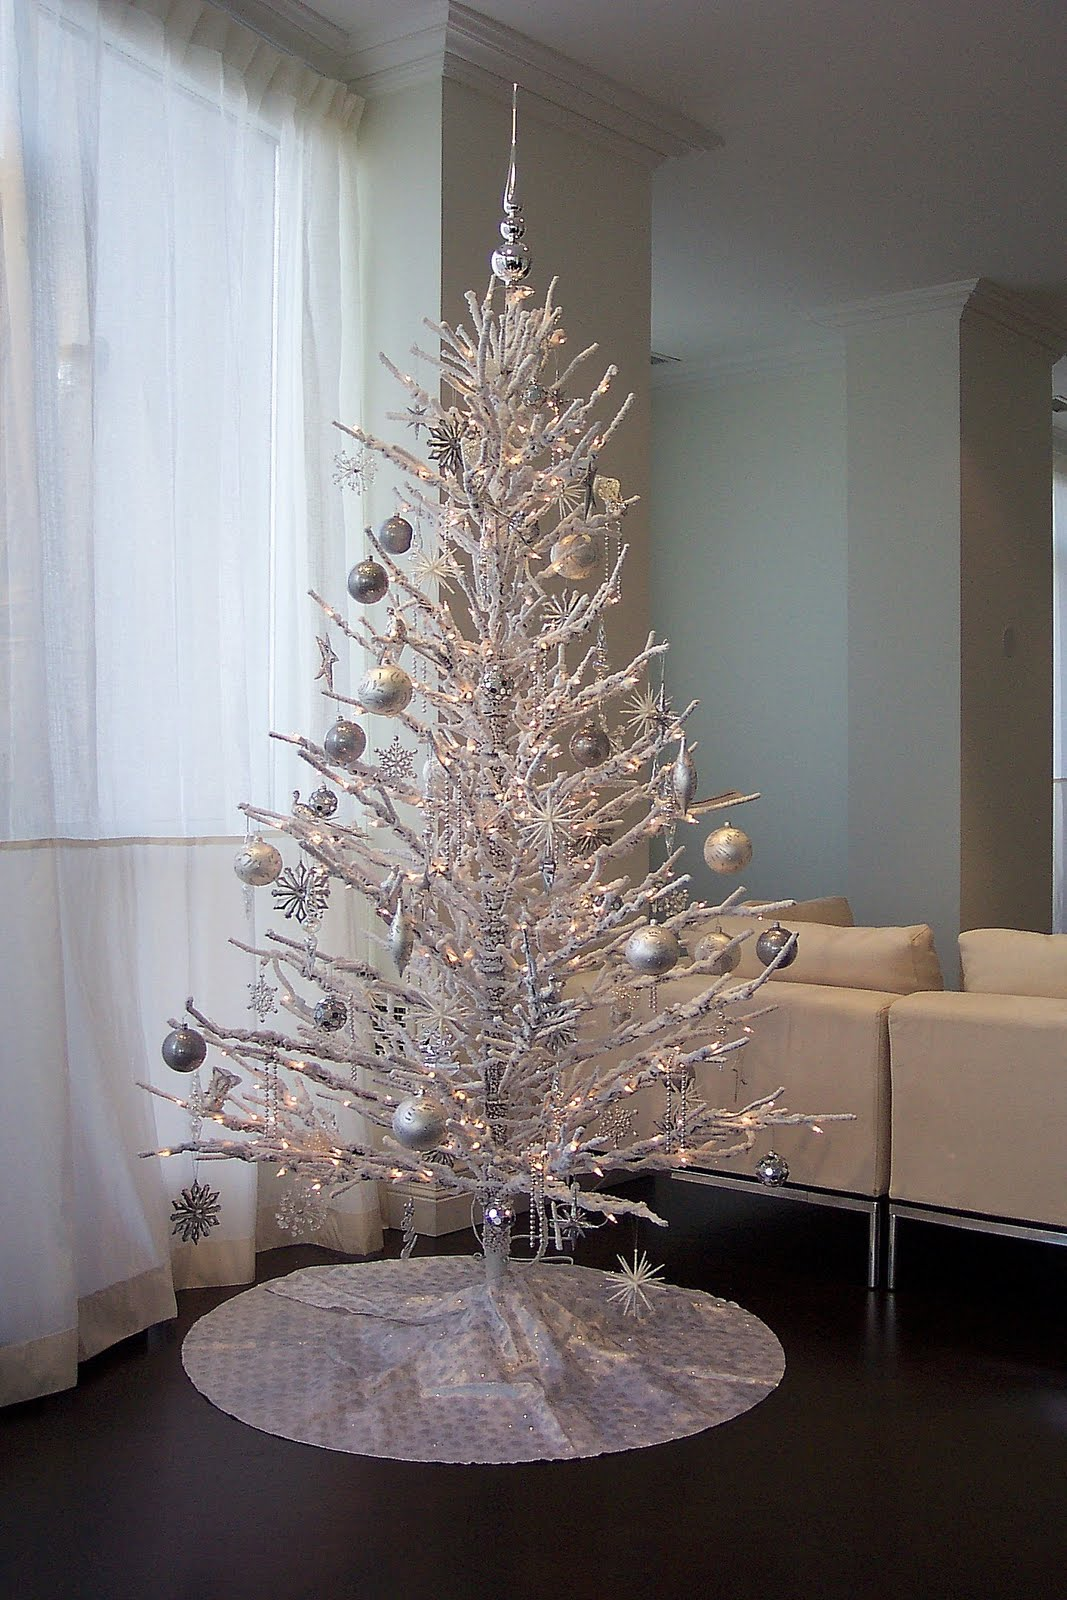 http://4.bp.blogspot.com/-MglifBWA6Tc/TvTx0Vq8ueI/AAAAAAAAATE/lqEOfKlYDN0/s1600/8_Christmas-tree-decorating-Christmas-tree-decorating-ideas-best-Christmas-tree-decorating-ideas.jpg